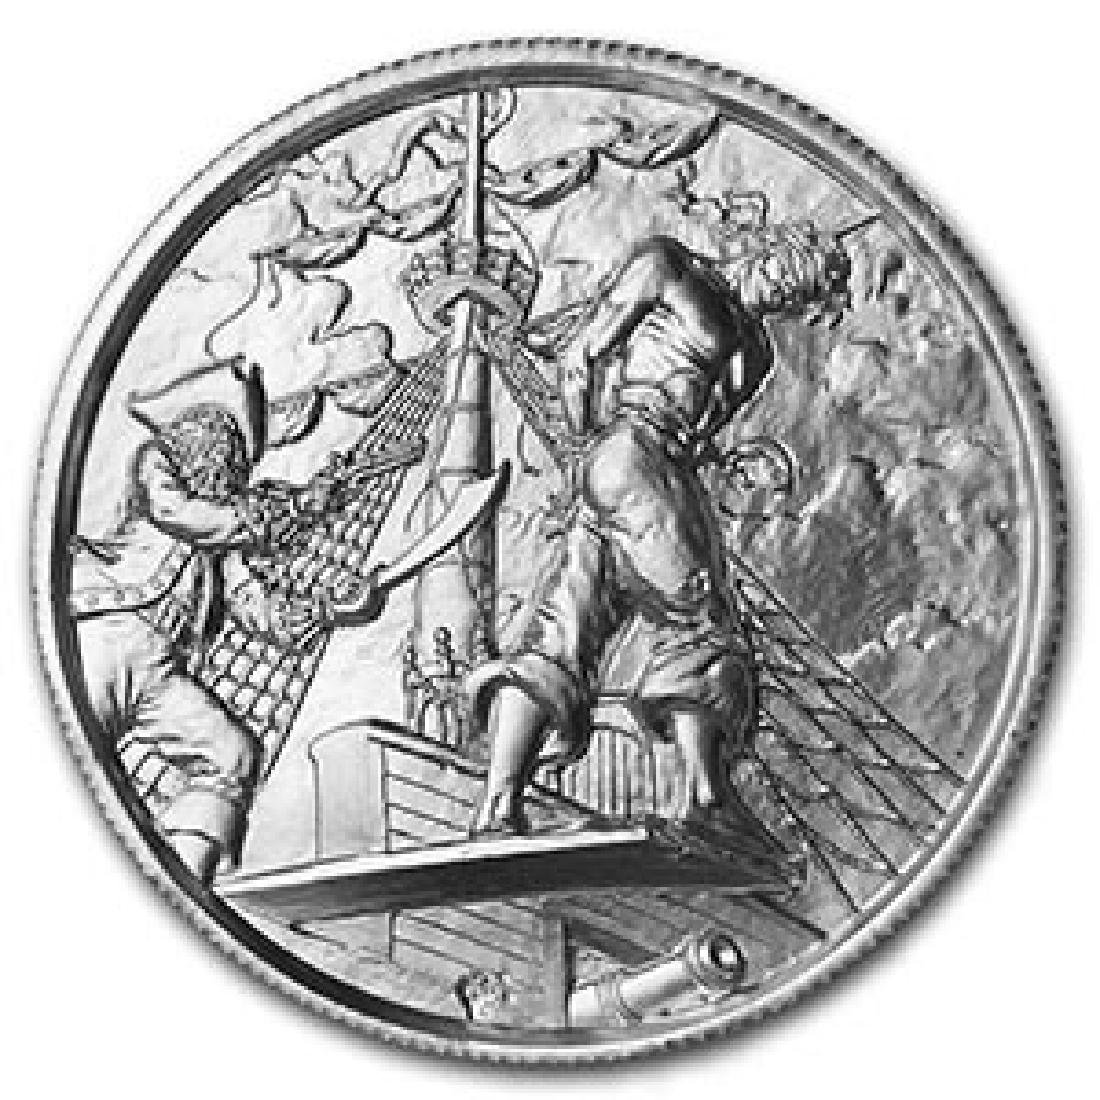 2 oz Silver Round - The Plank